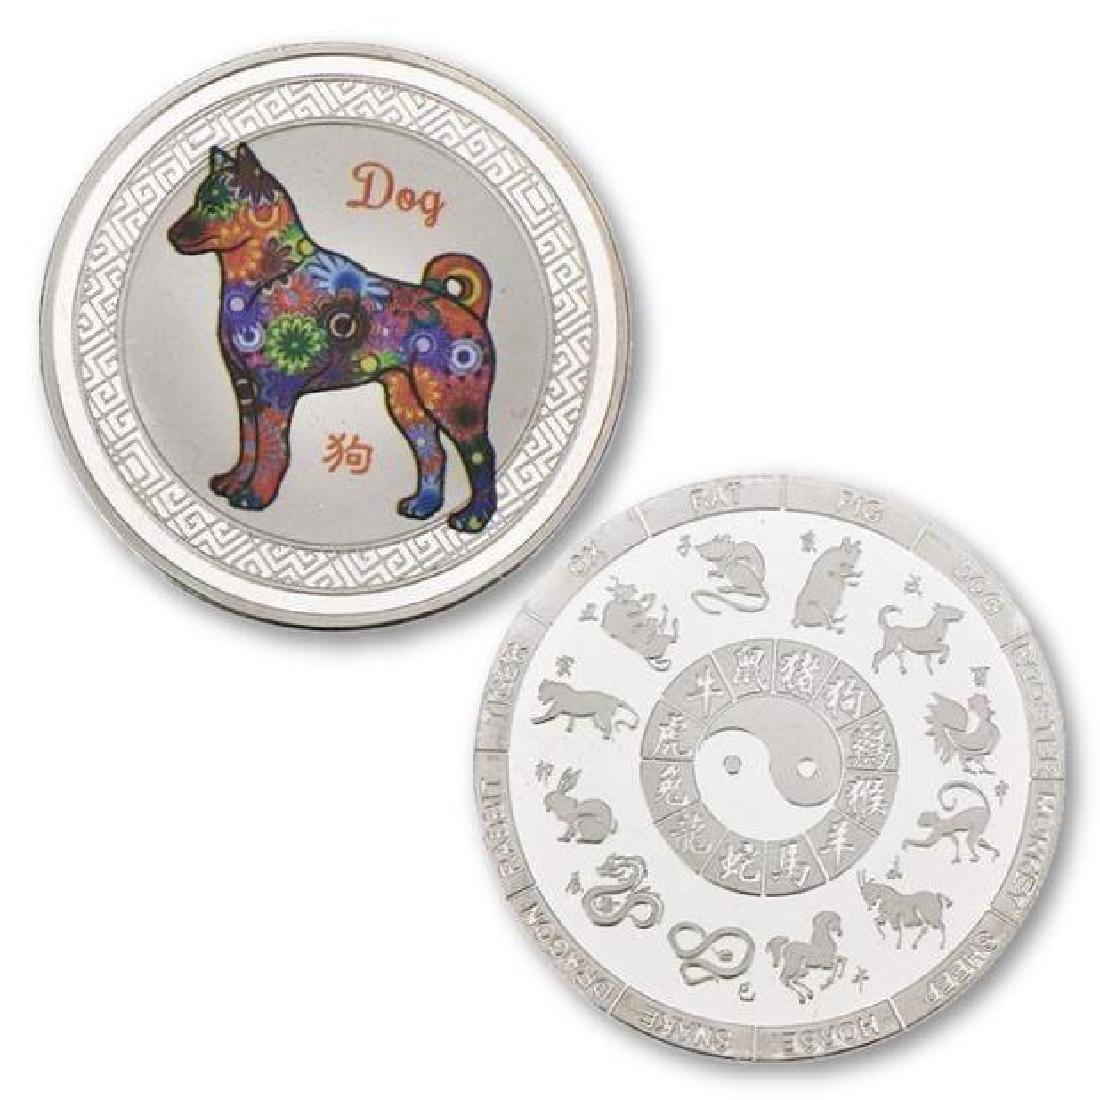 China Zodiac Dog Year Colored Silver Clad Coin